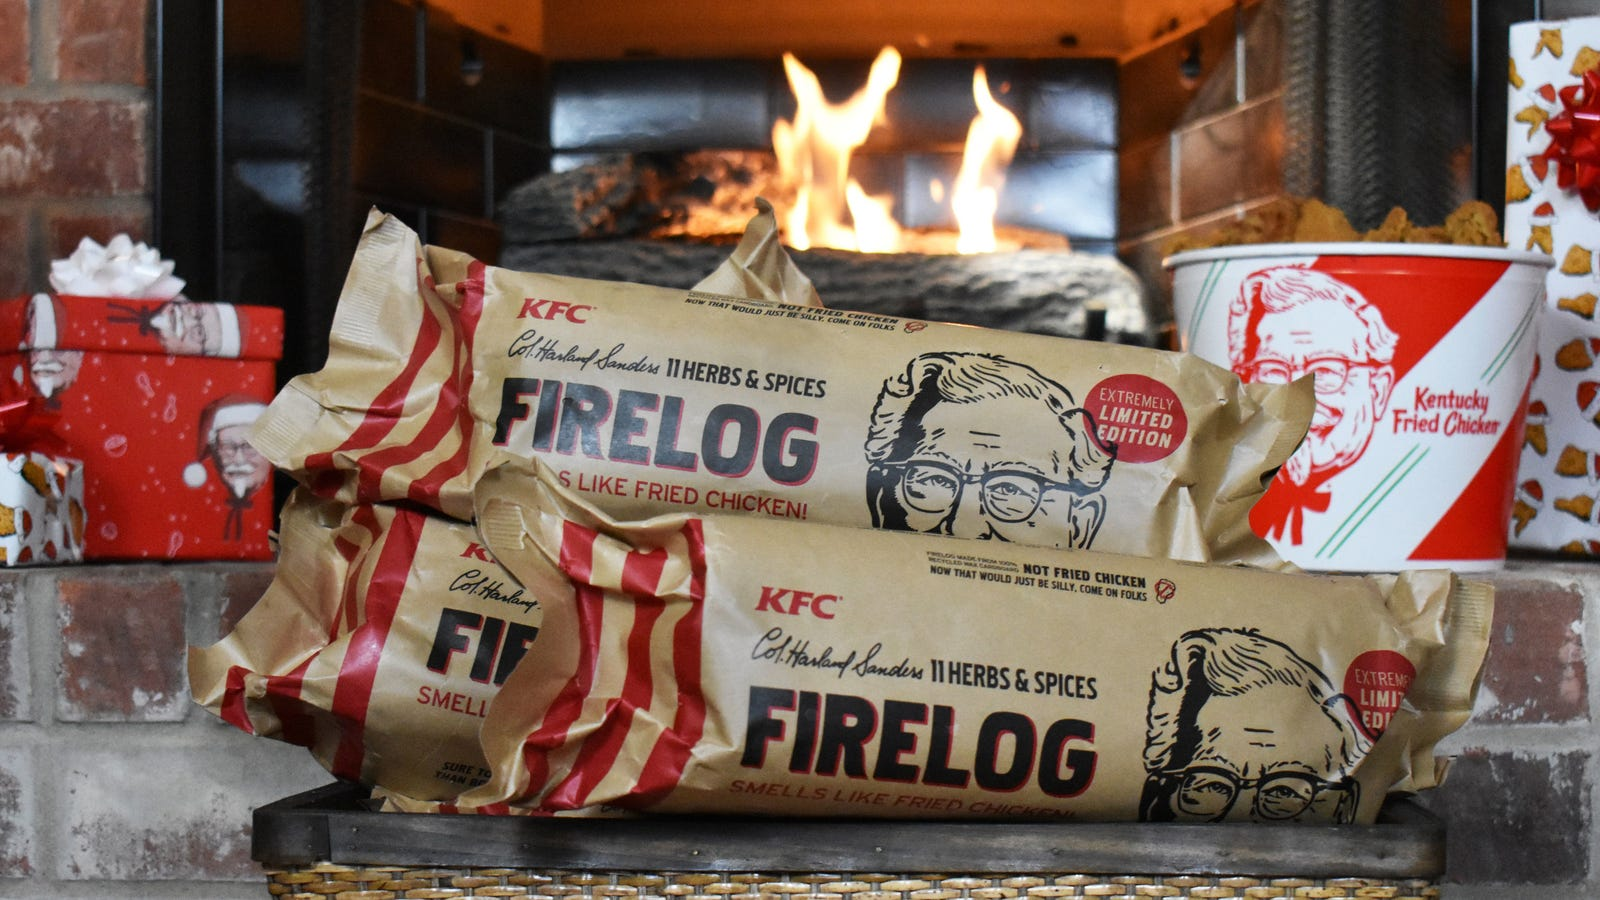 KFC assumes you're interested in purchasing this fried chicken-scented firelog